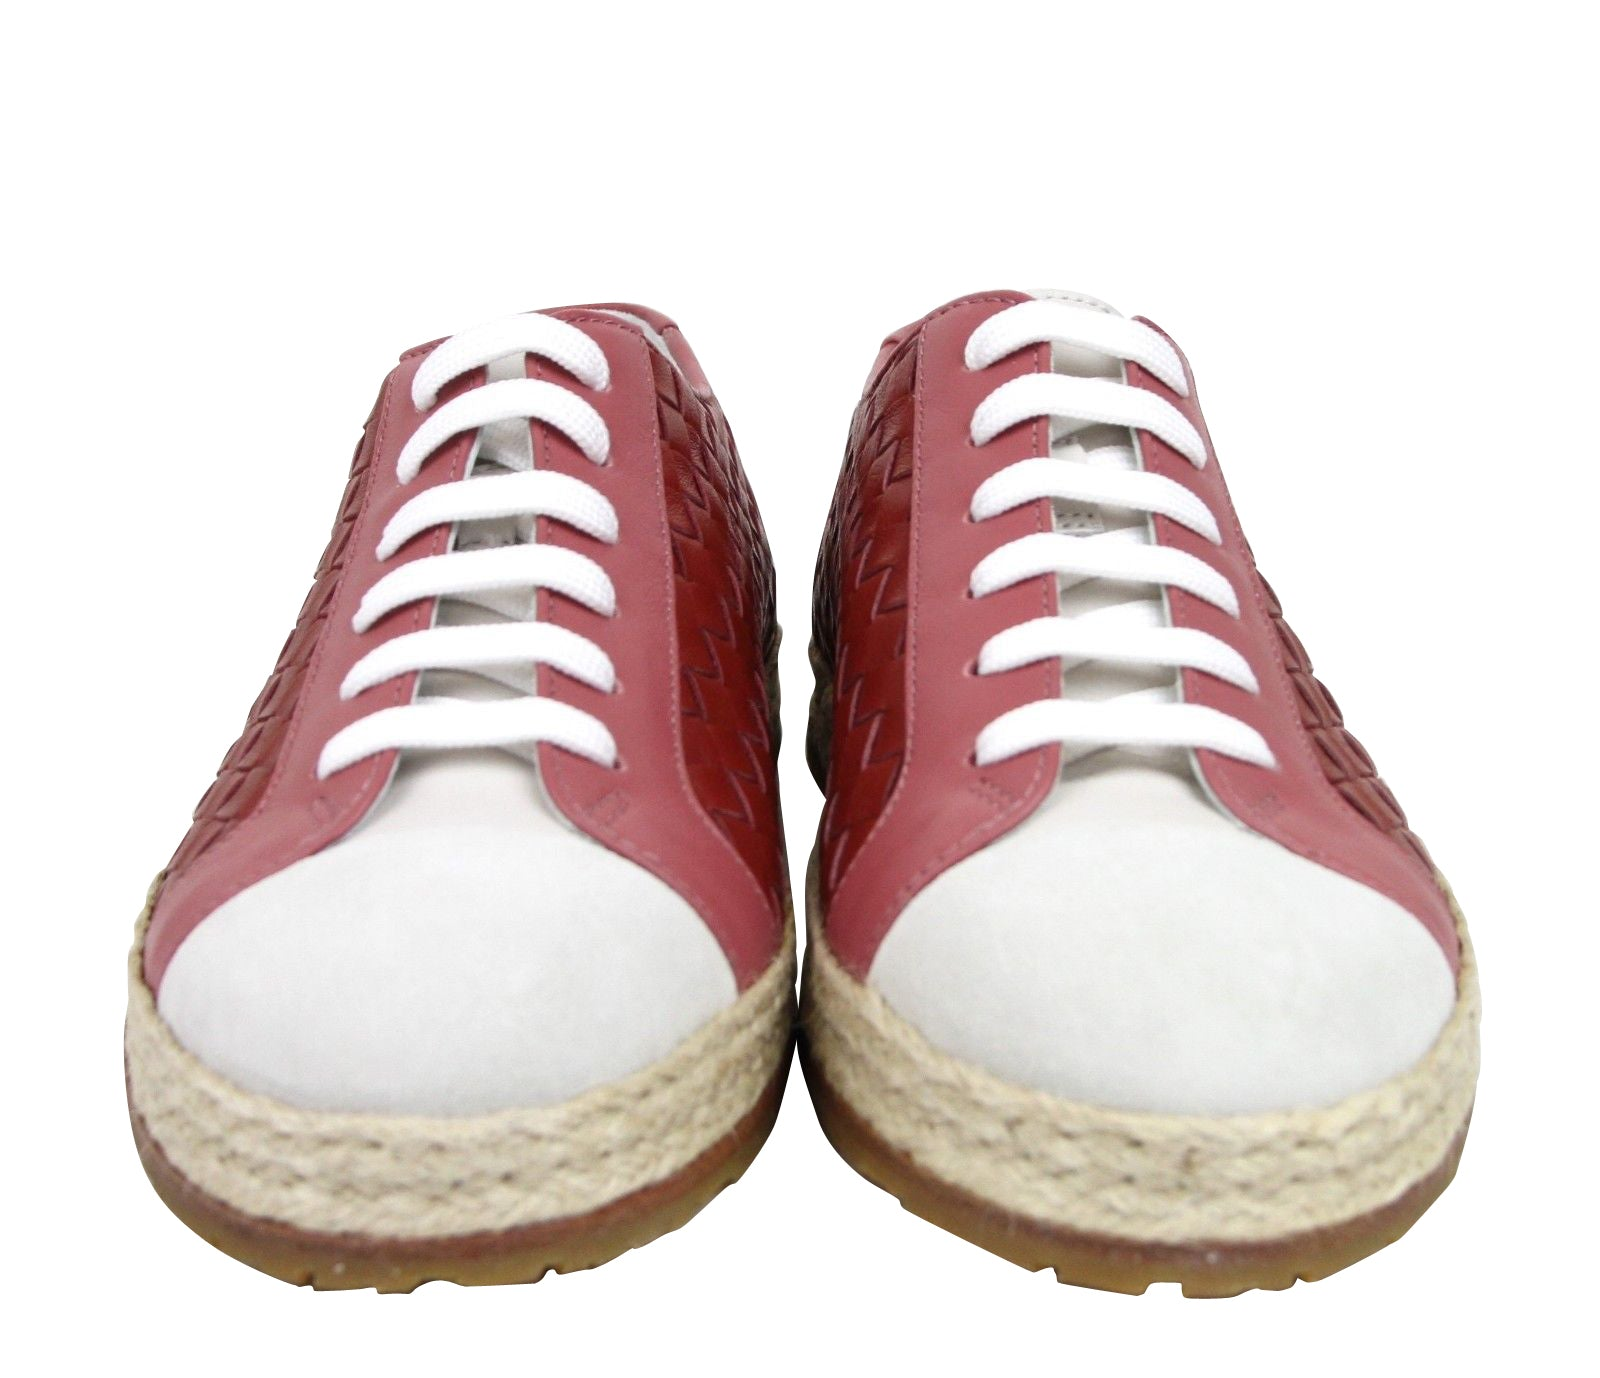 Red Leather Woven Lace Ups Sneakers 4516